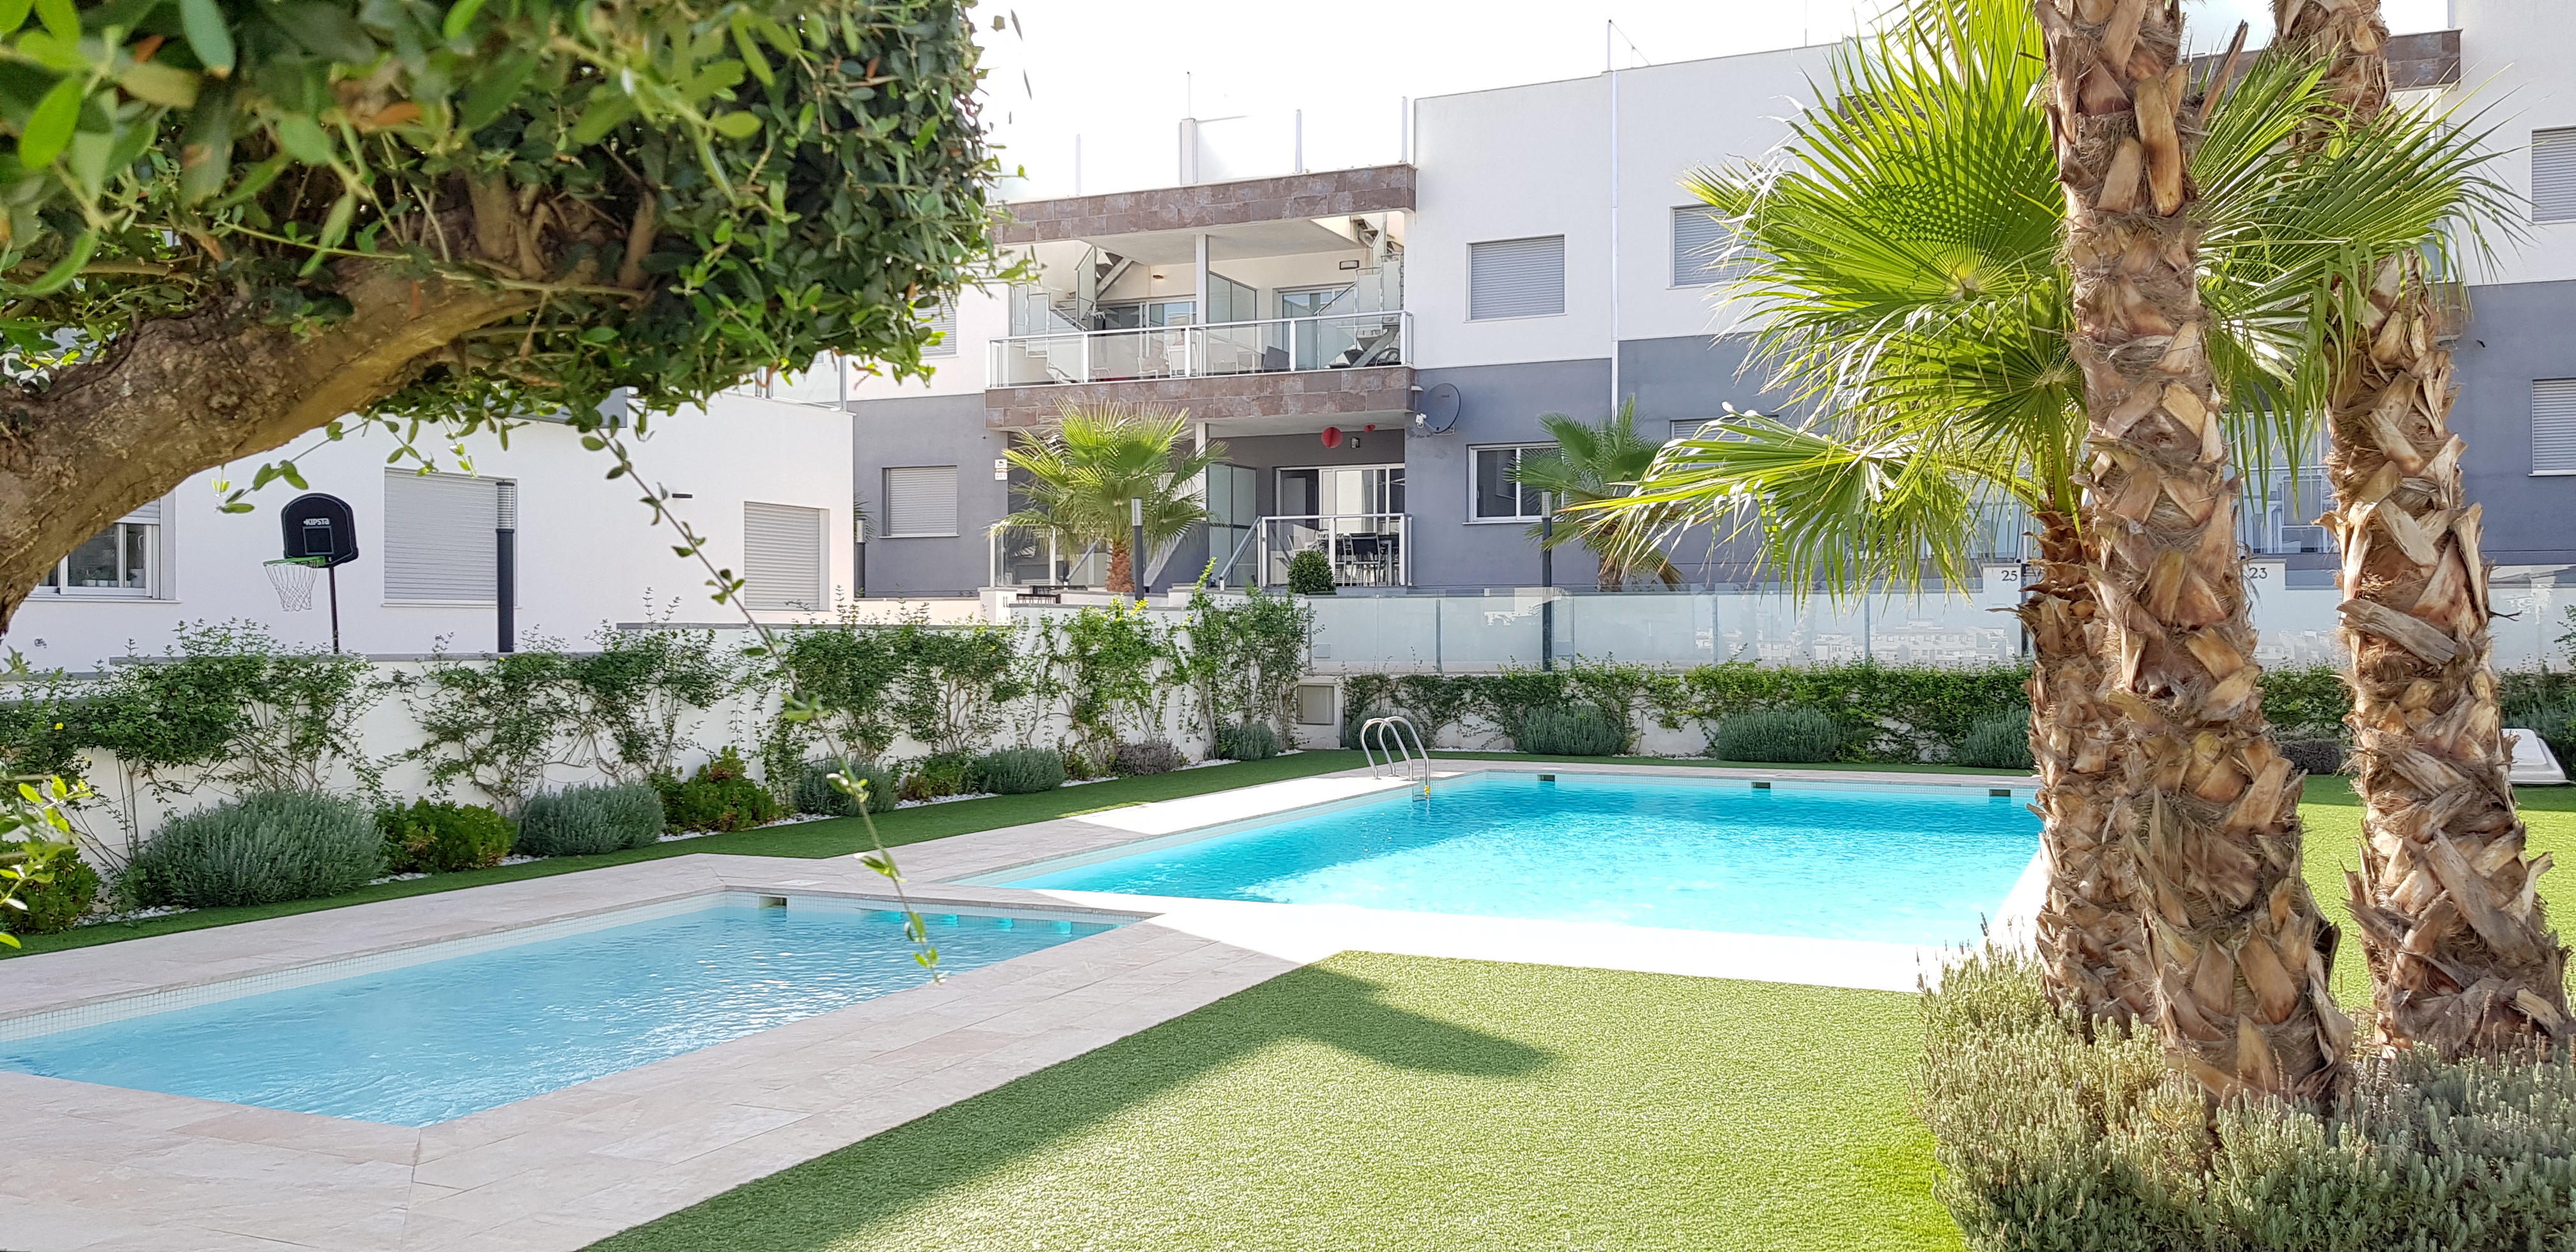 Stunning 2 Bed Ground Floor Apartment Overlooking the Swimming Pool